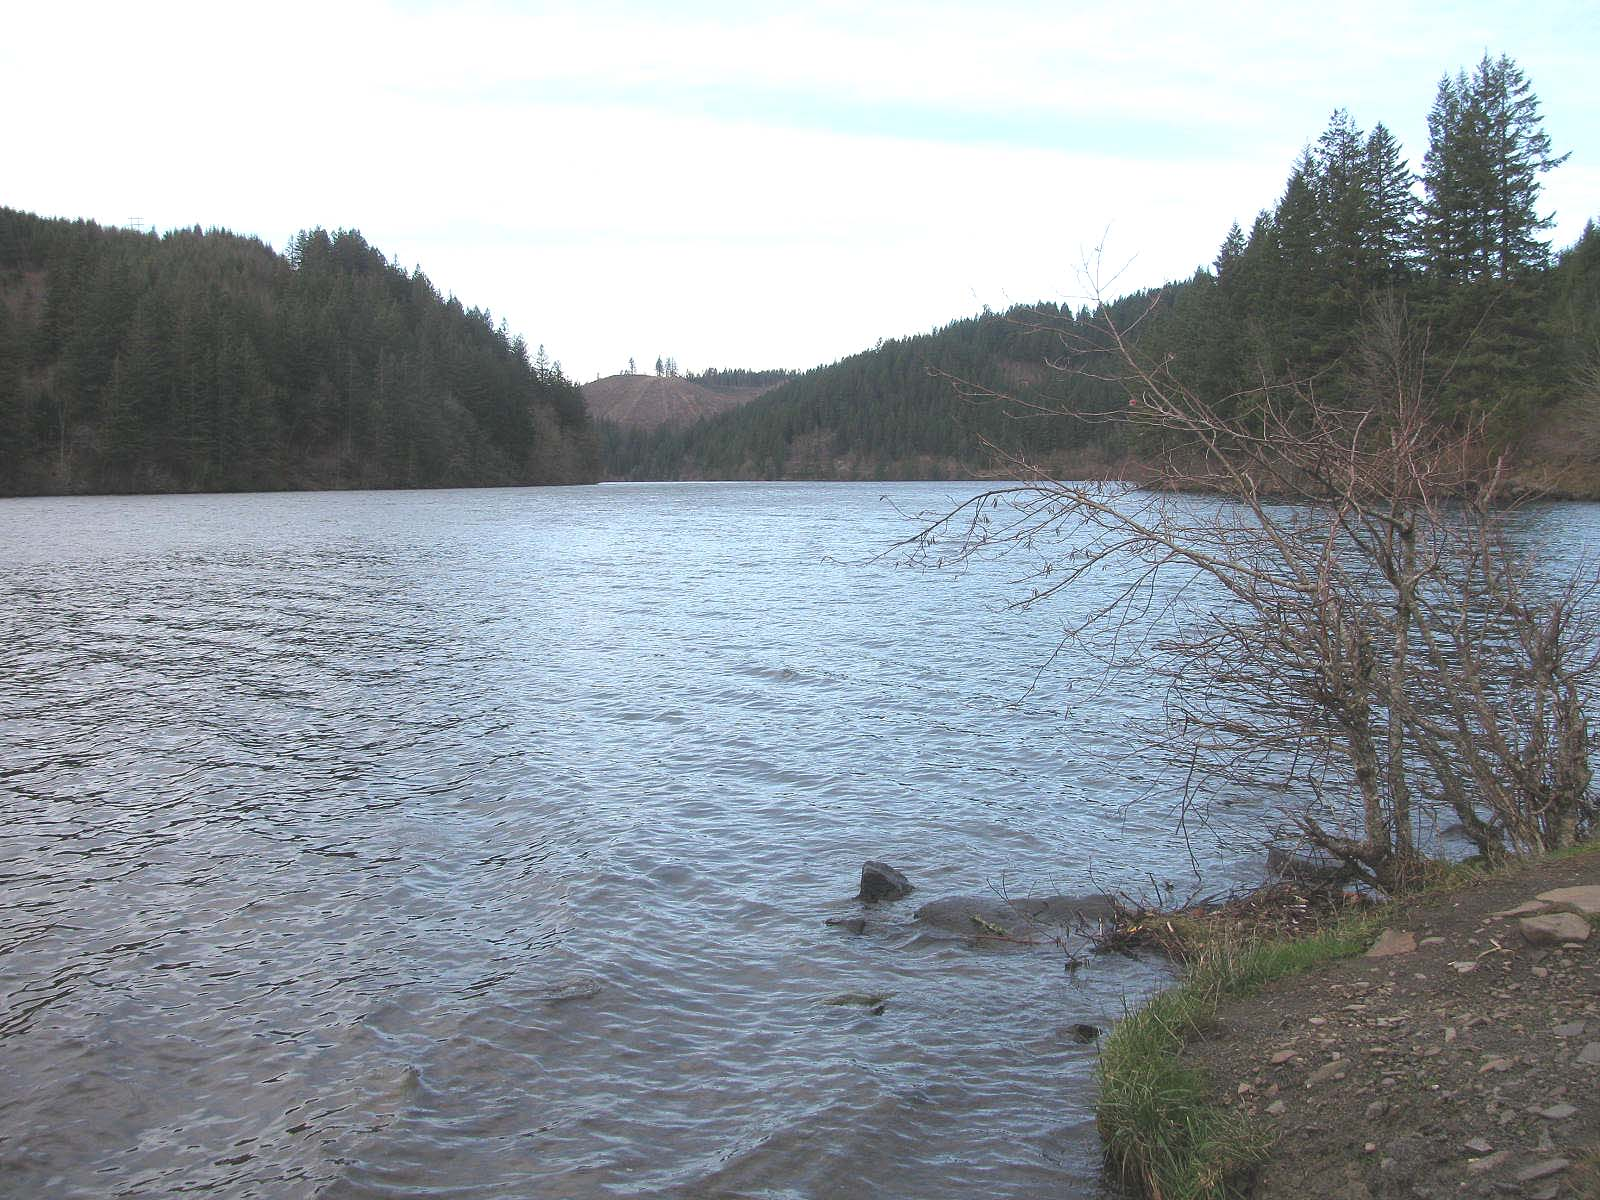 large lake created by a dam on the Clackmas River  near Estacada, Oregon.  Shows pine trees surrounding the lake.